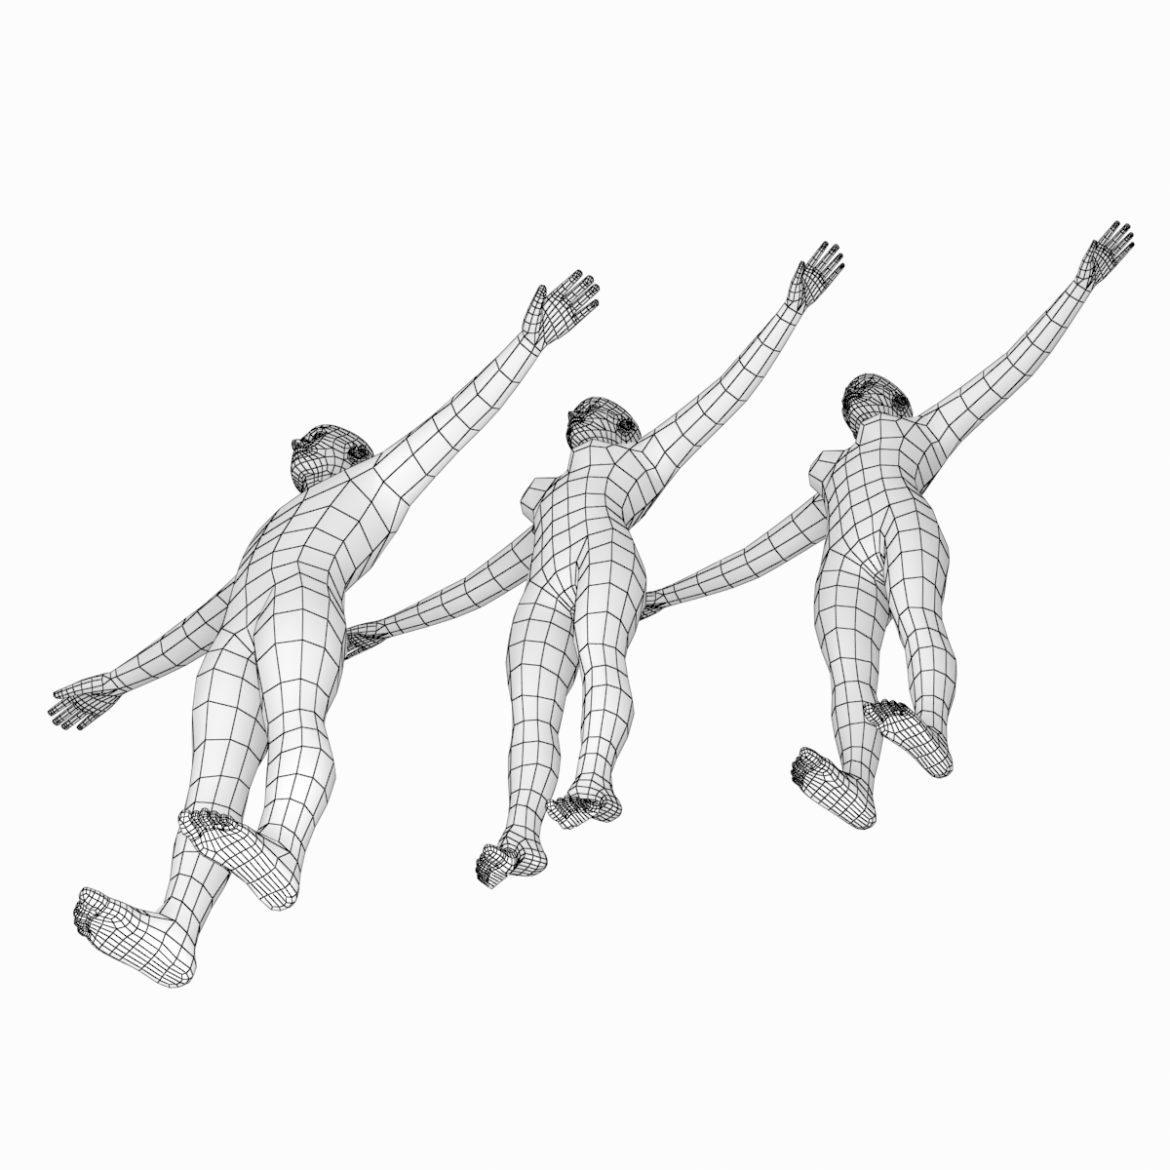 male and female base mesh in t-pose 3d model png stl obj ma mb max fbx dxf dwg dae c4d 3ds txt 305172